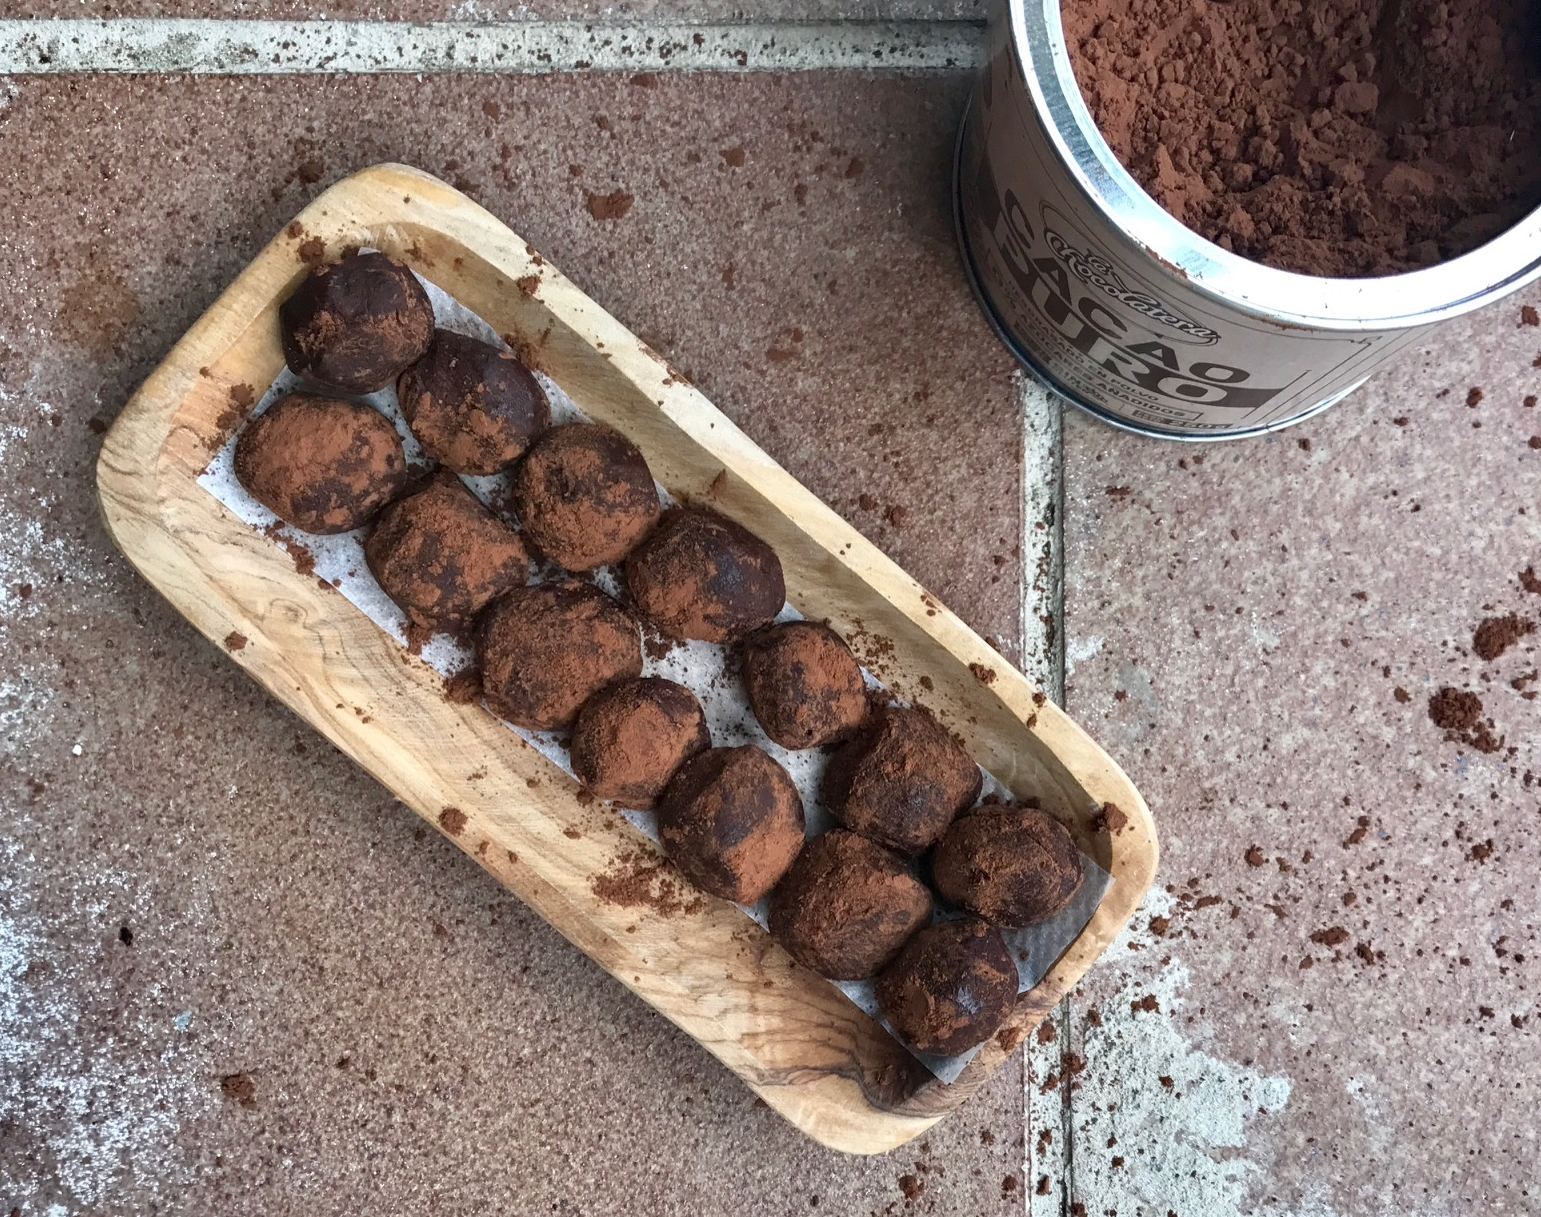 Gooey Dark Chocolate Caramel Truffles look great  with a messy dusting of cocoa powder